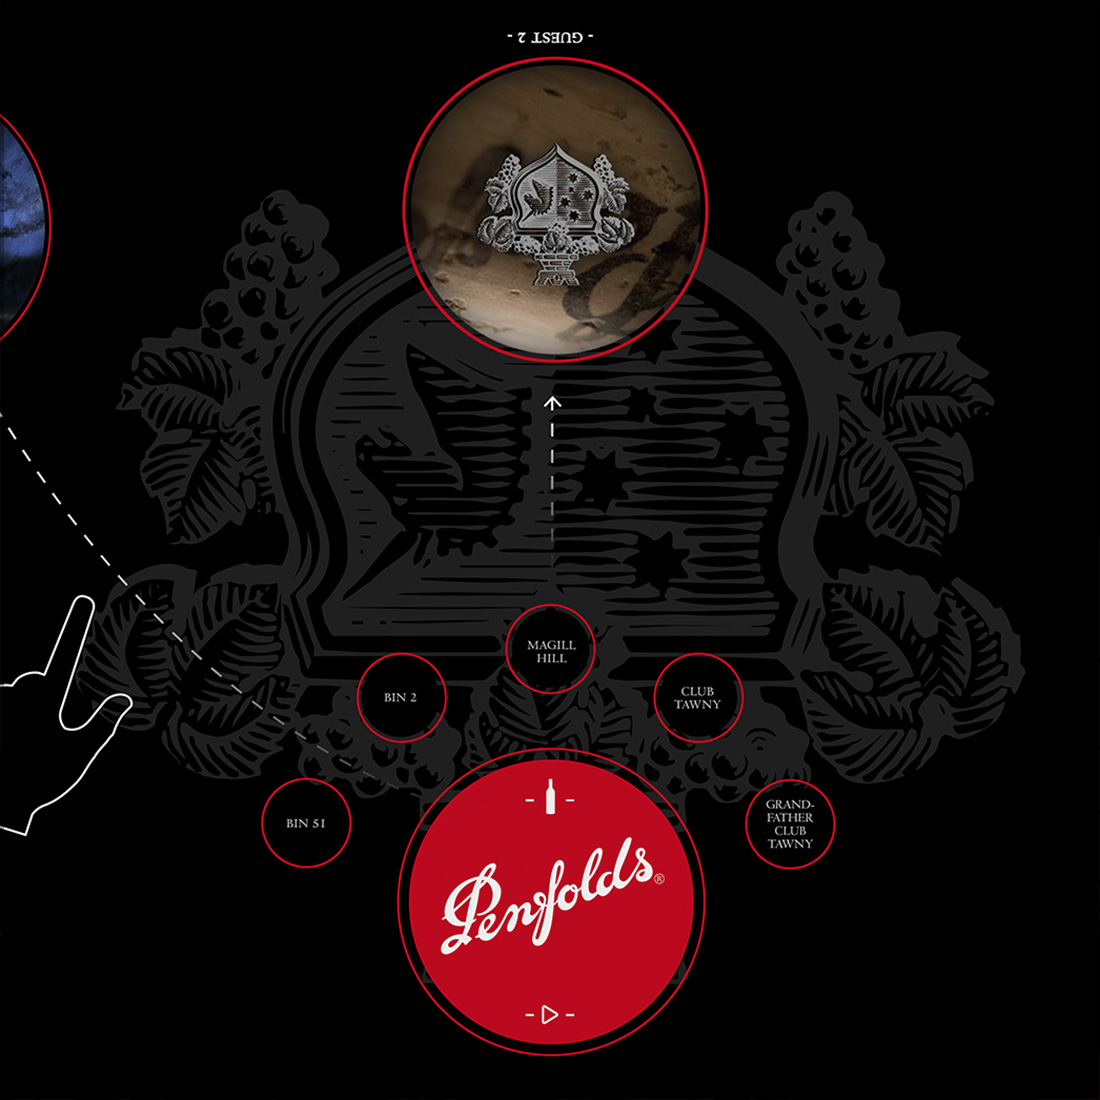 Penfolds Interactive Wine Tasting Table